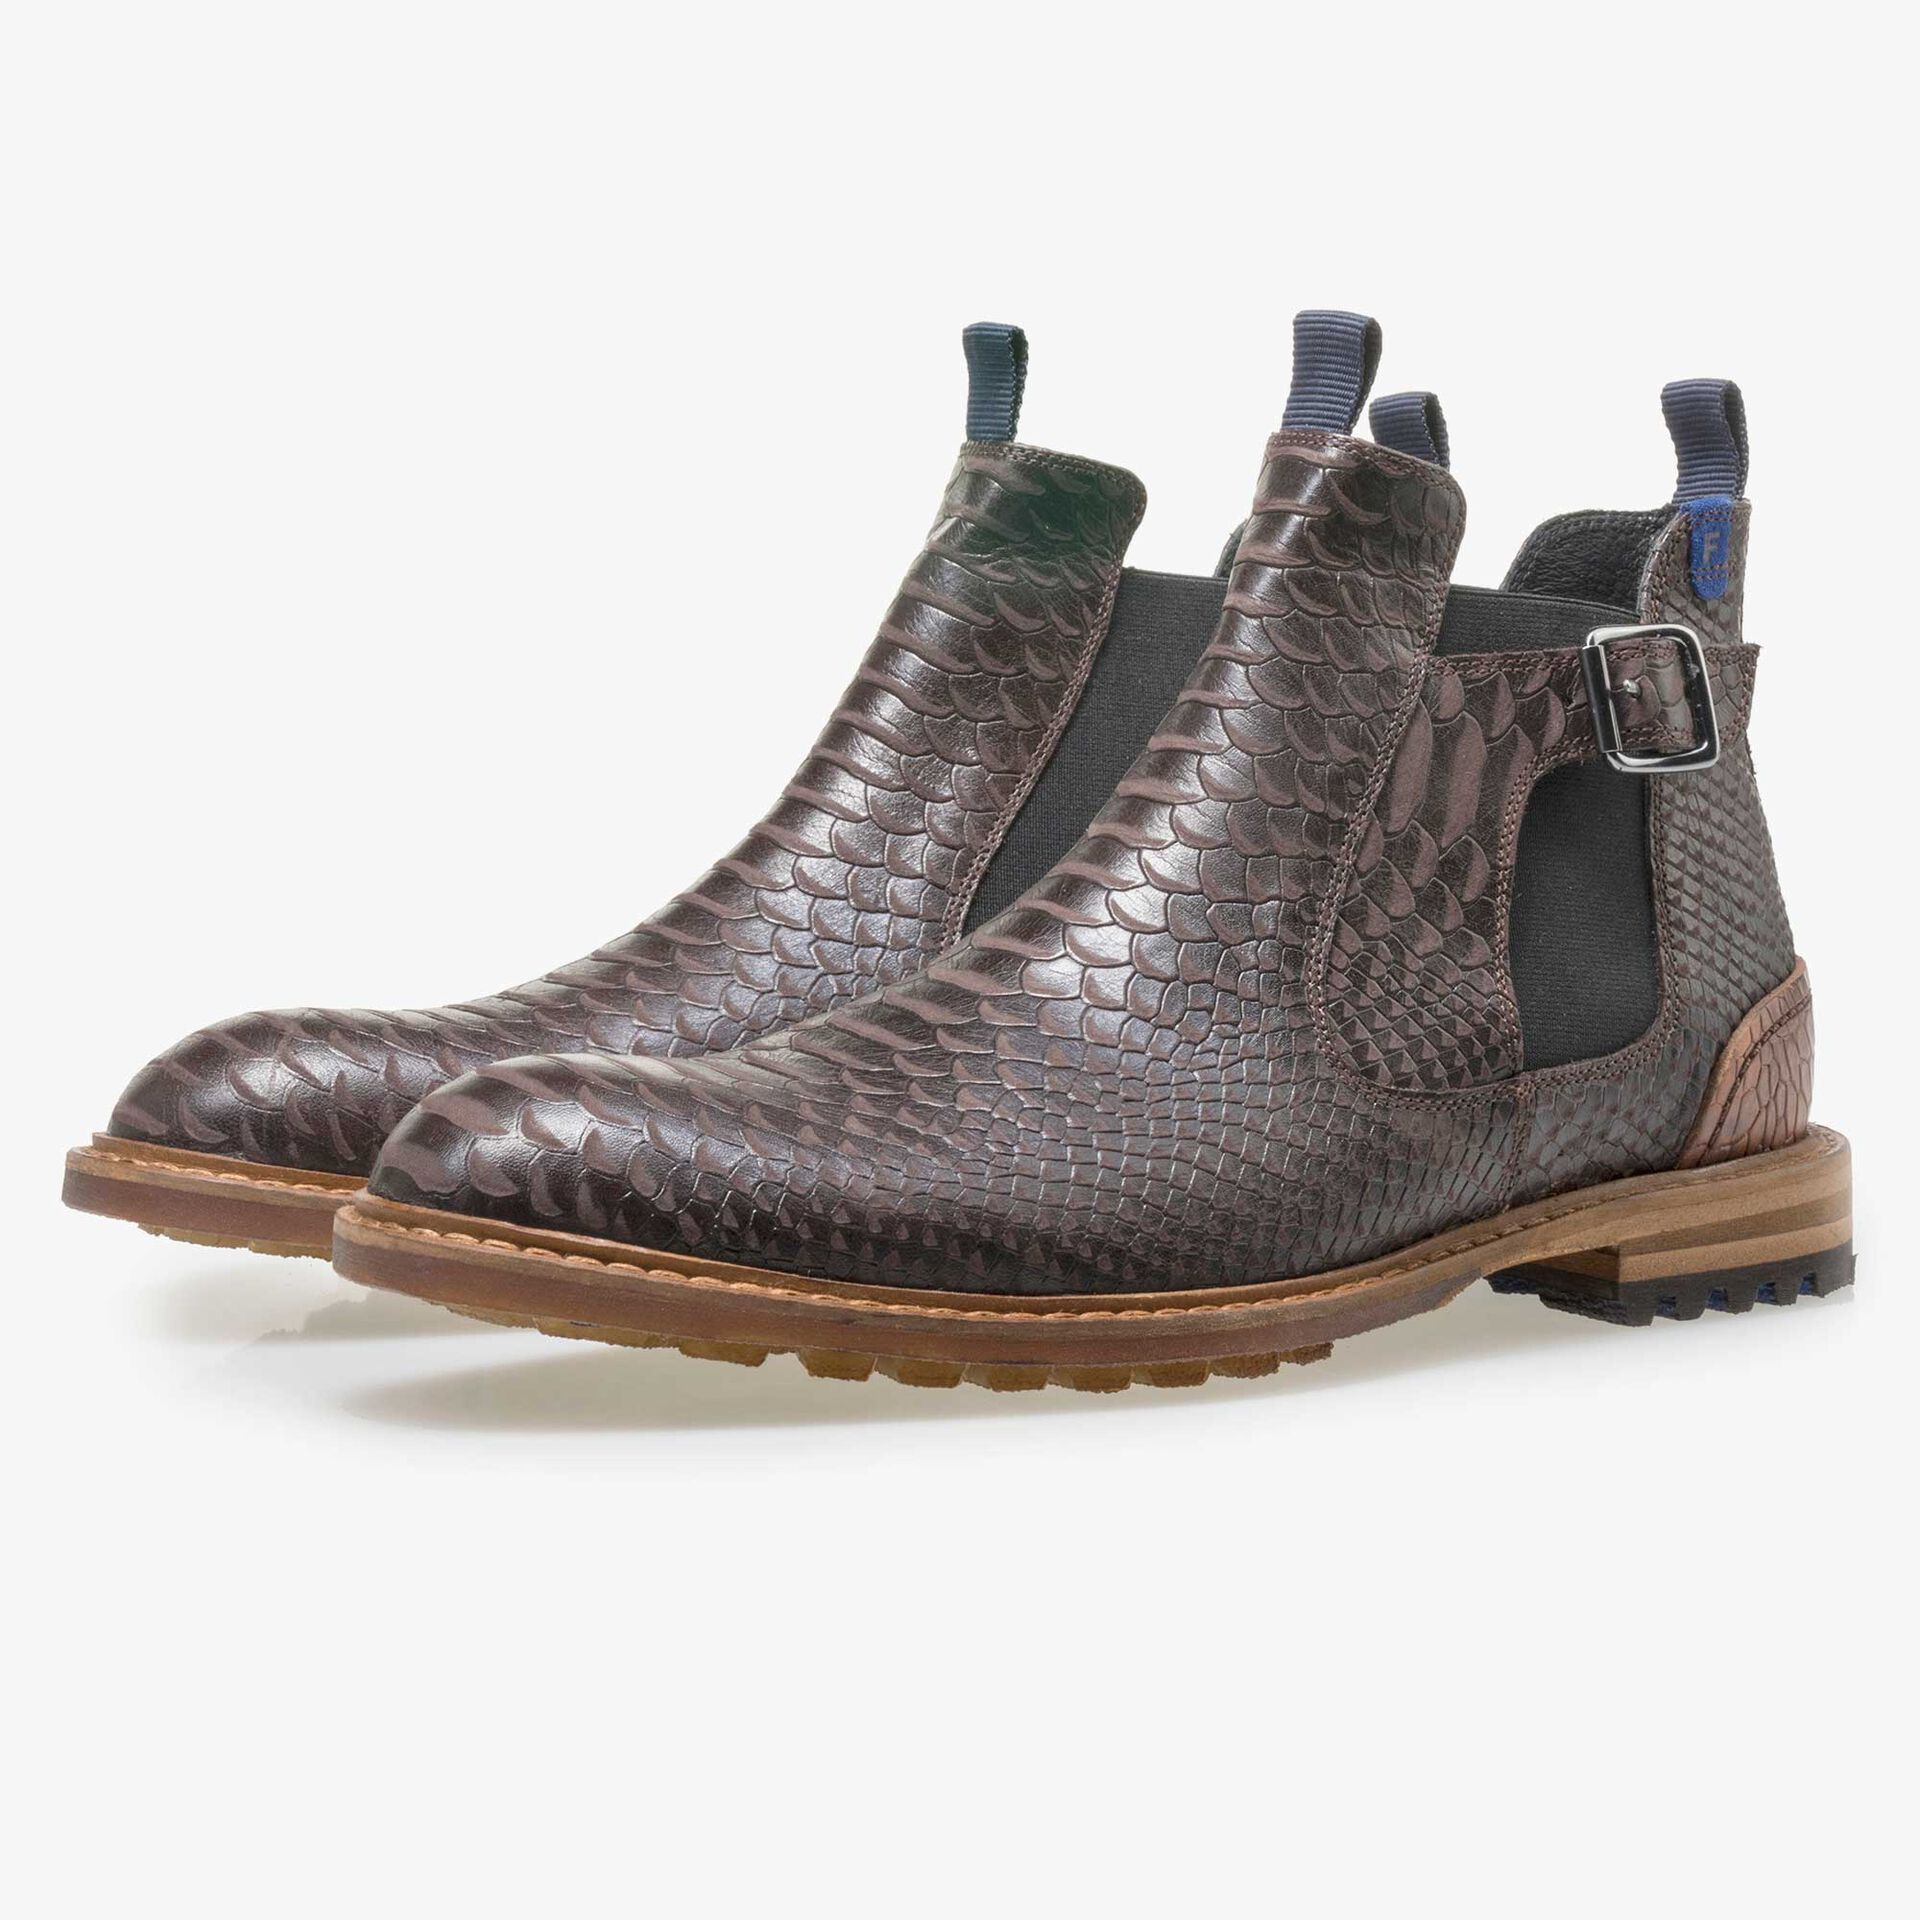 Floris van Bommel men's dark brown leather Chelsea boot